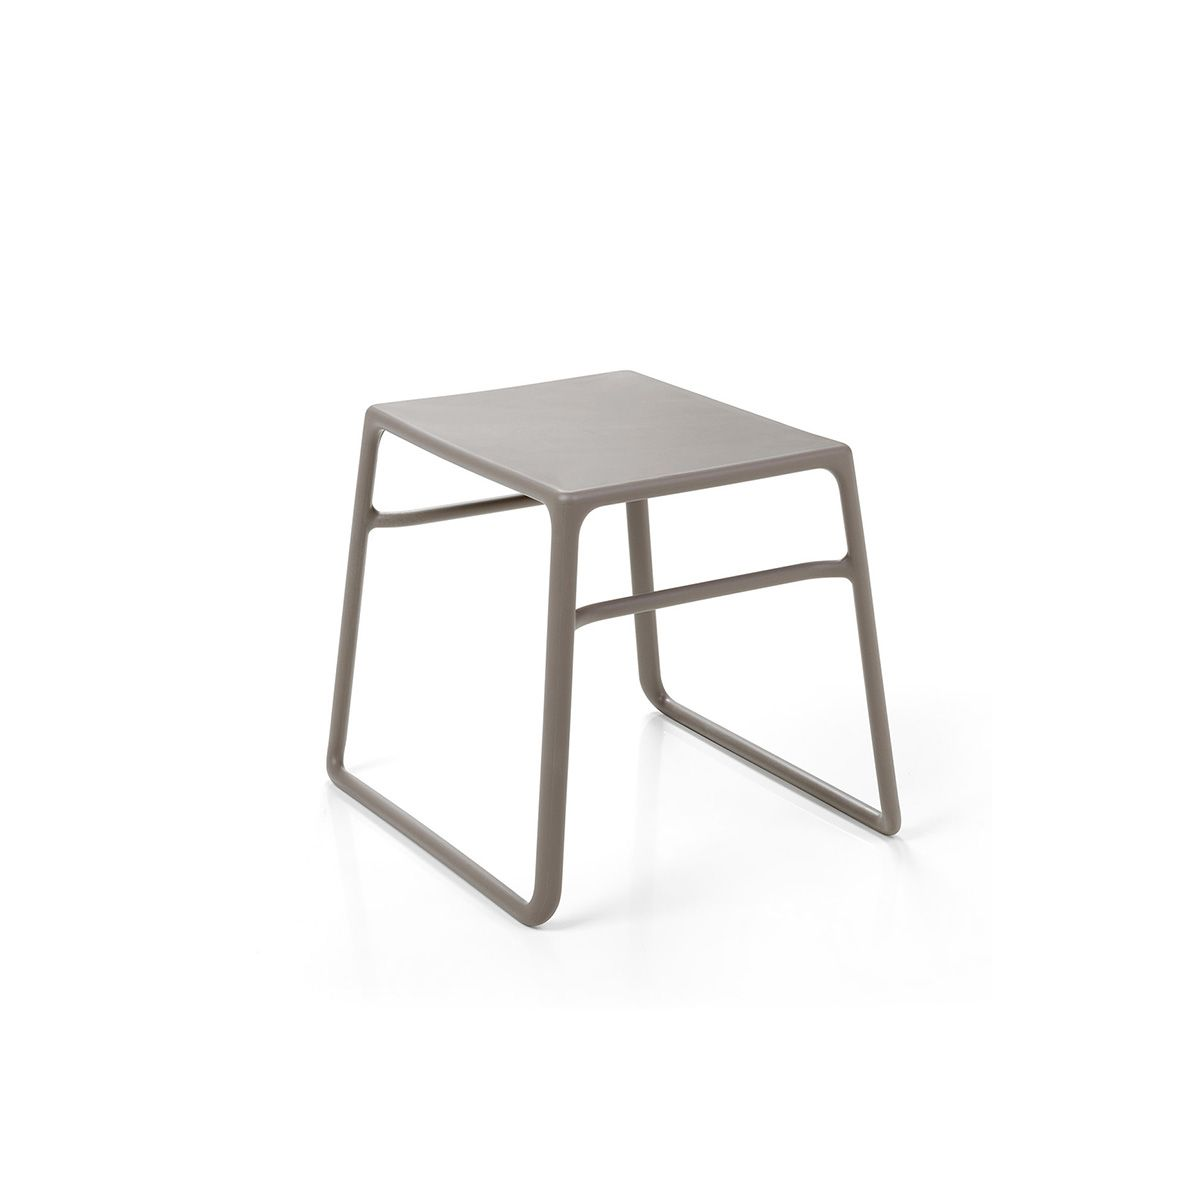 Table basse exterieur design pop nardi zendart design for Jardin exterieur design